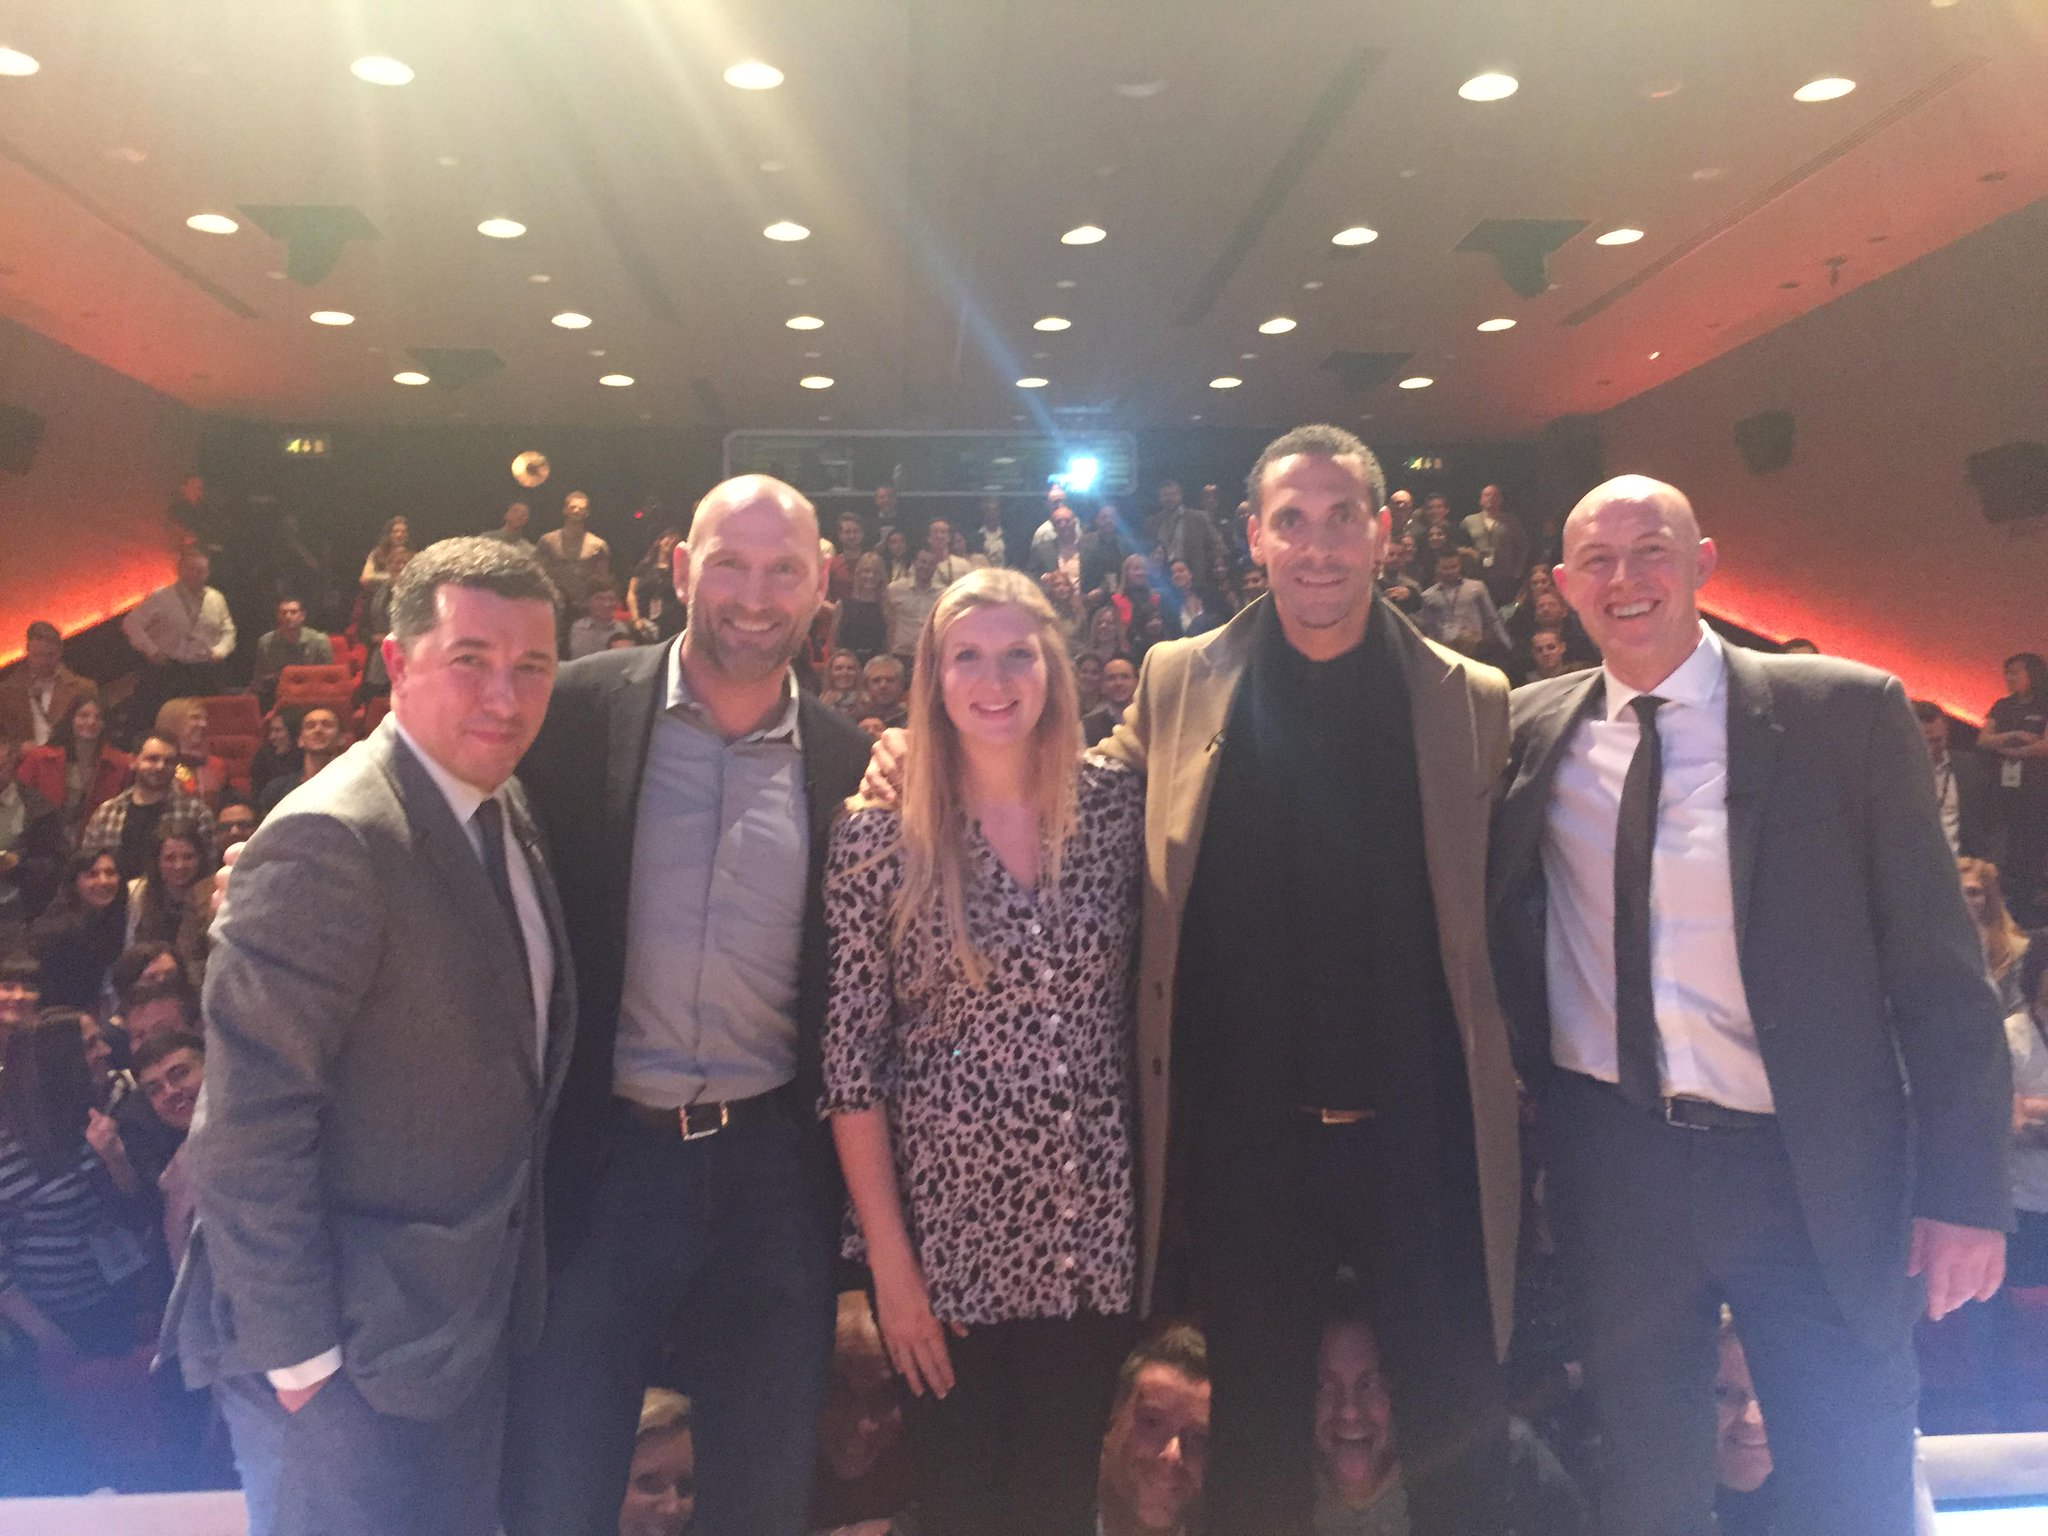 RT @davedins: Panel and audience of great sports #AdWeekEurope @rioferdy5 @dallaglio8 @BeckAdlington @simonolive http://t.co/iyW04ktwP6